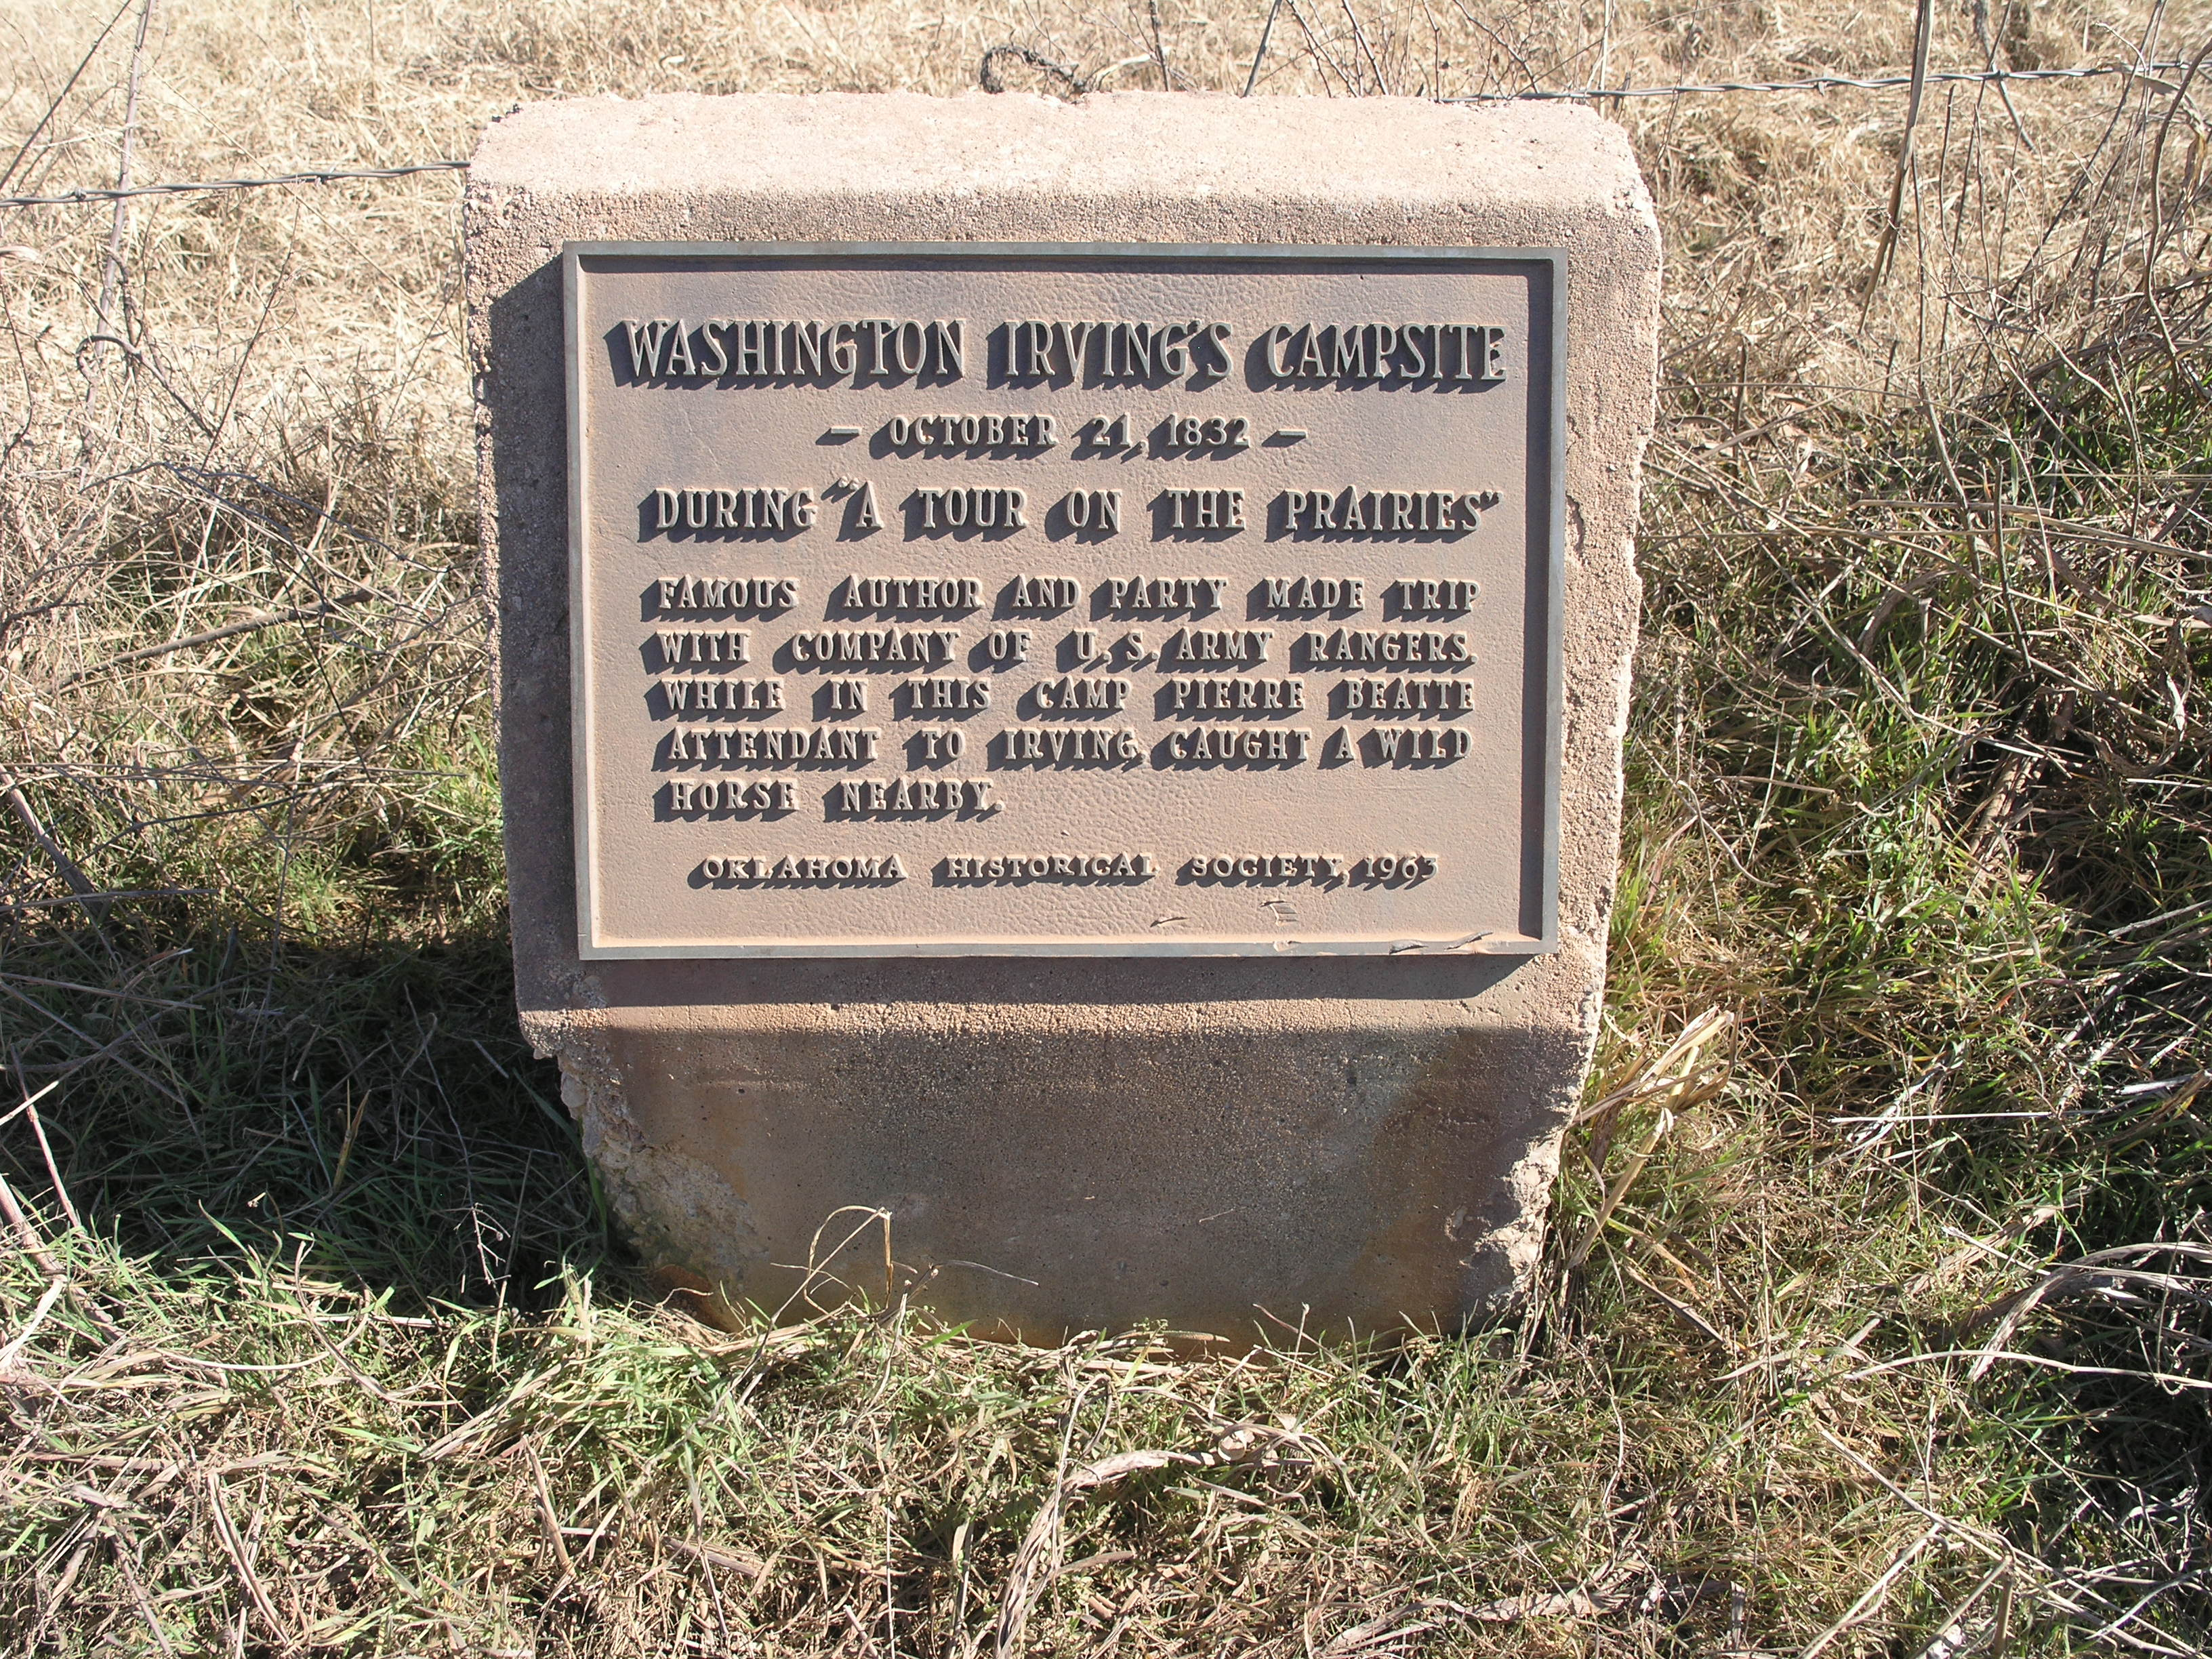 Exploring Oklahoma History: Wild Horse Creek - Washington Irving